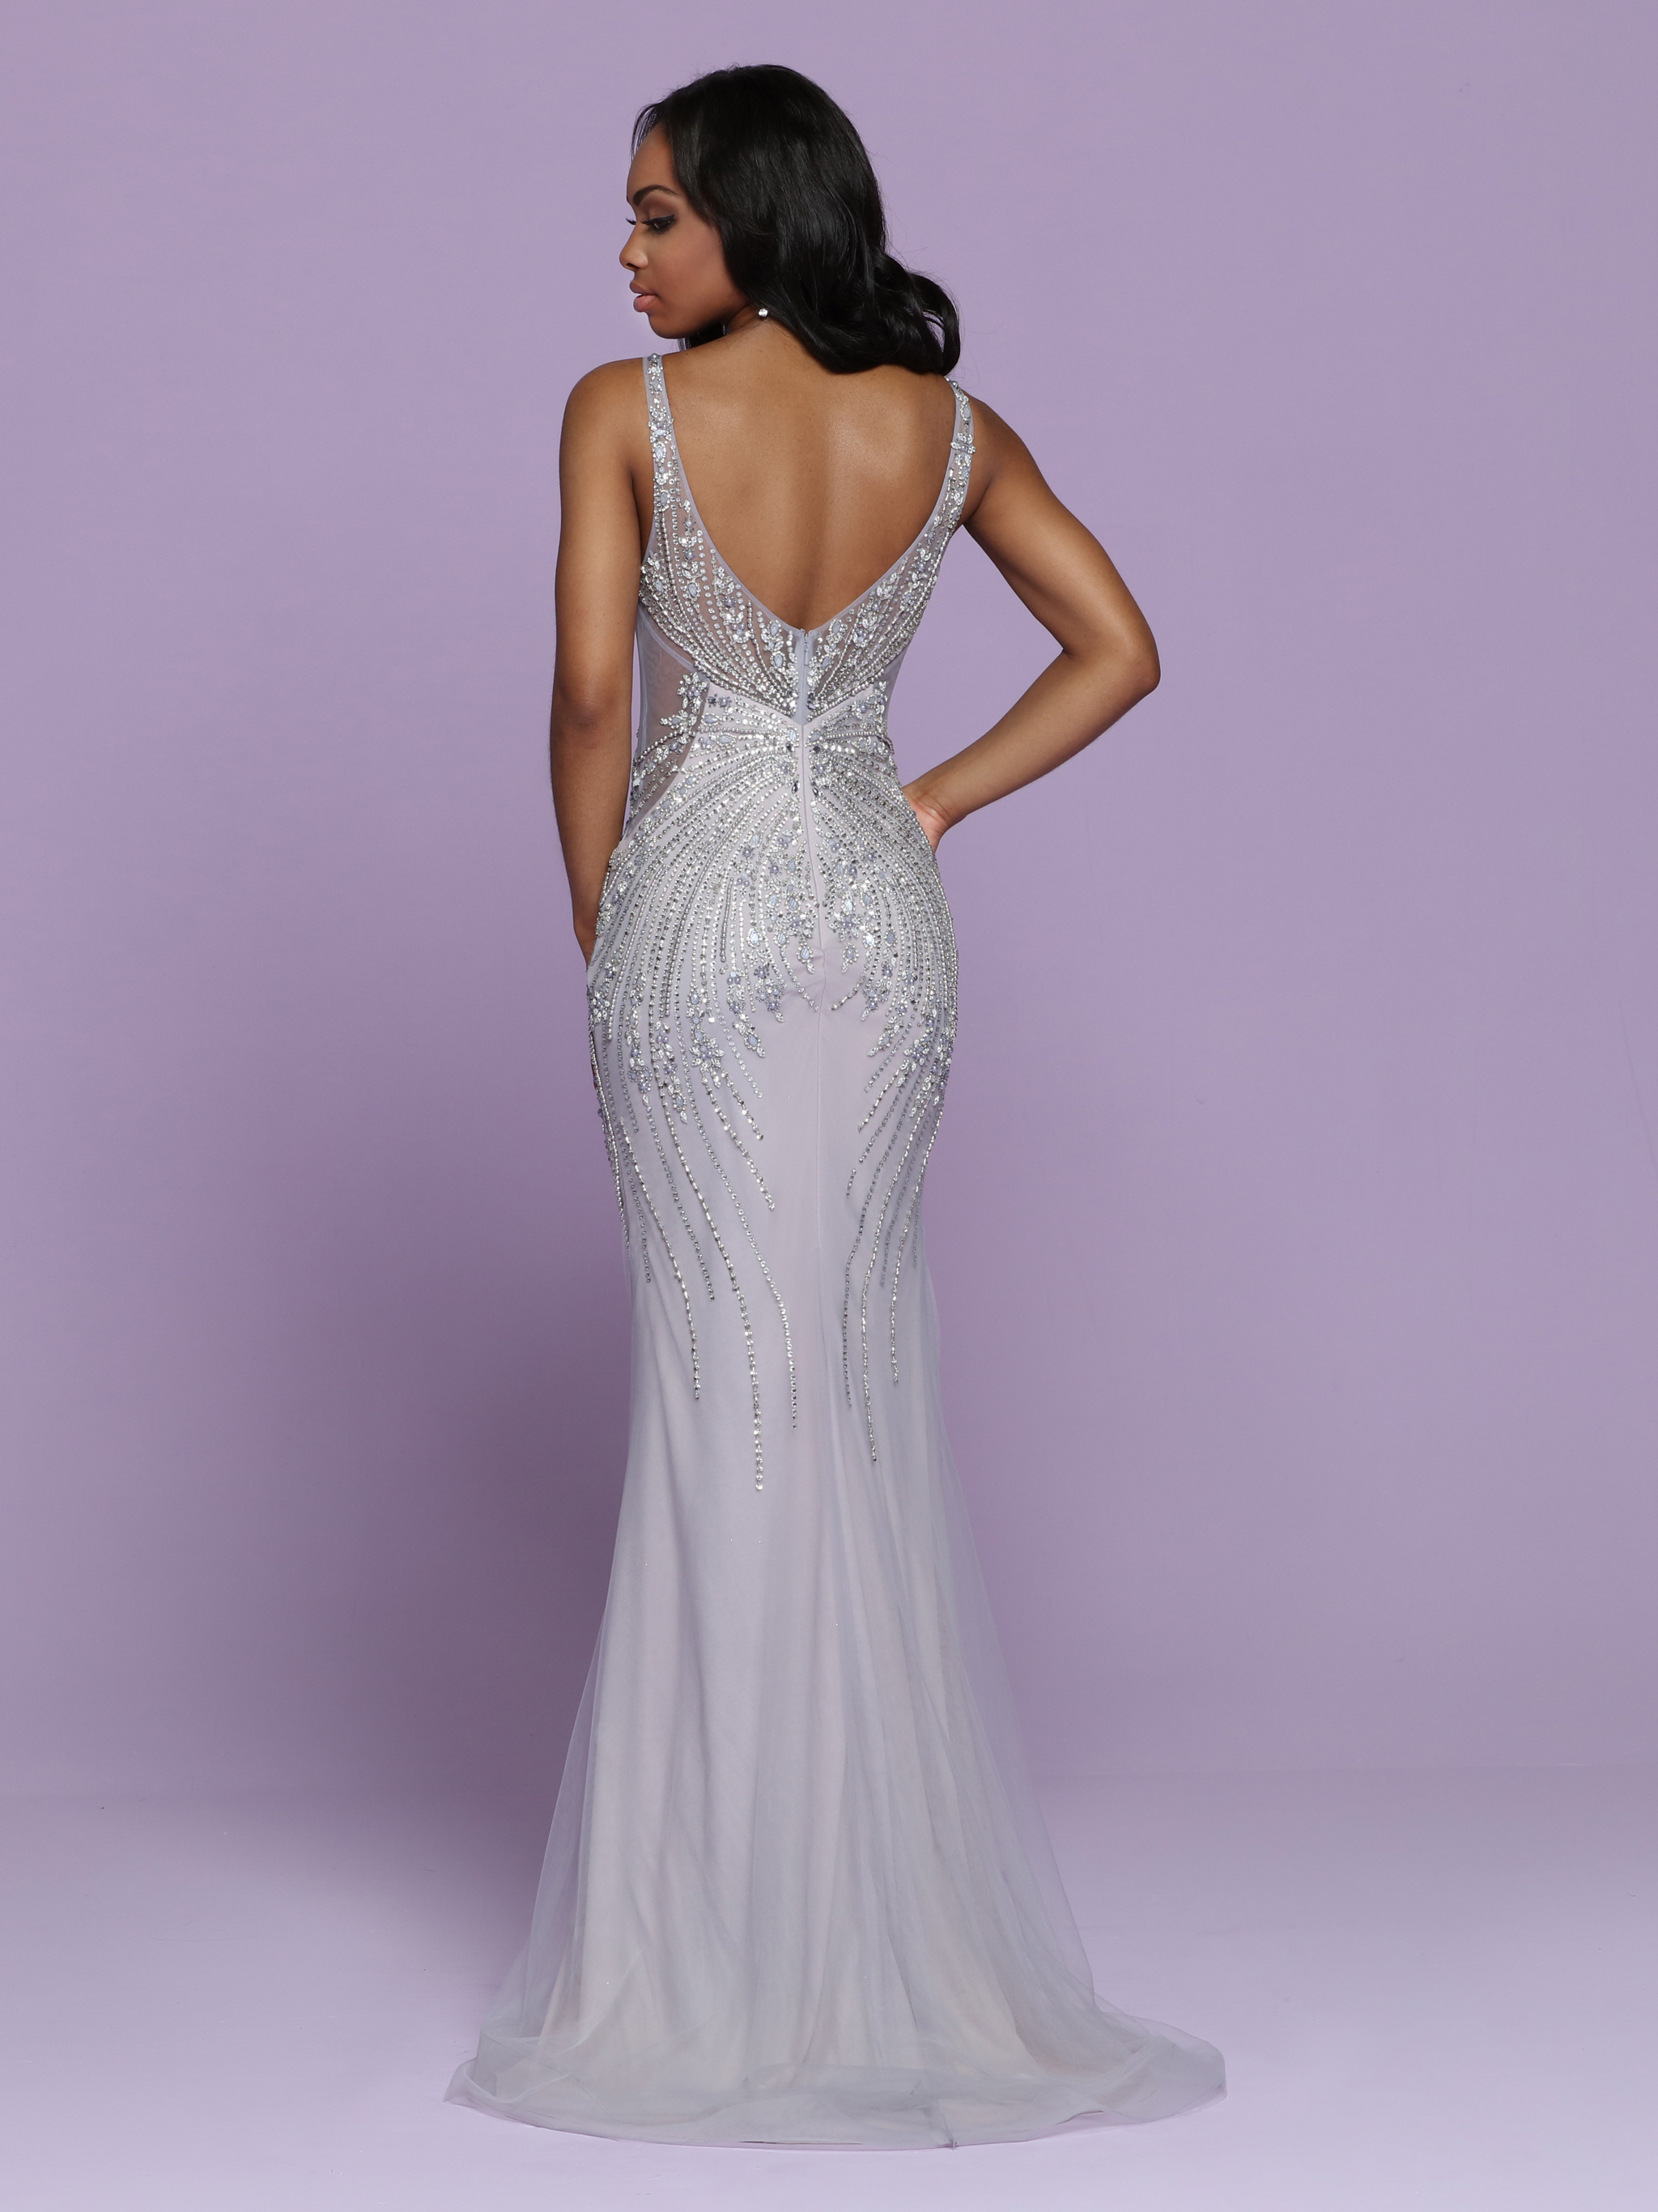 Image showing back view of style #72052